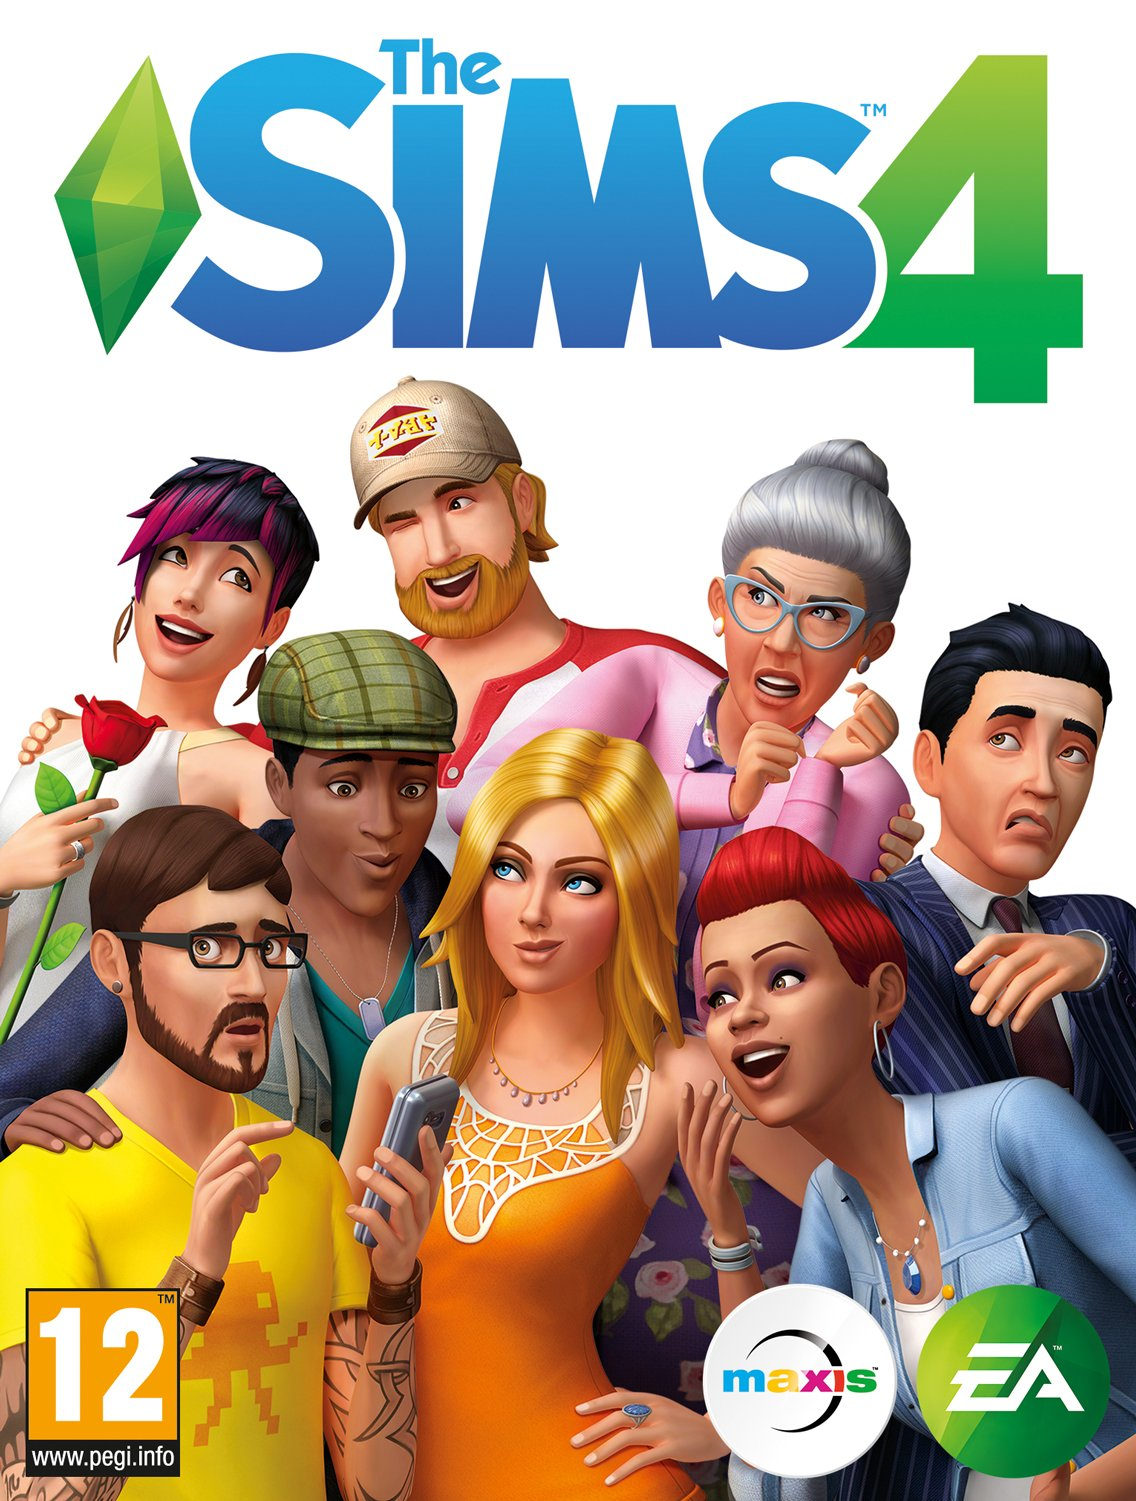 The sims 4 origin account